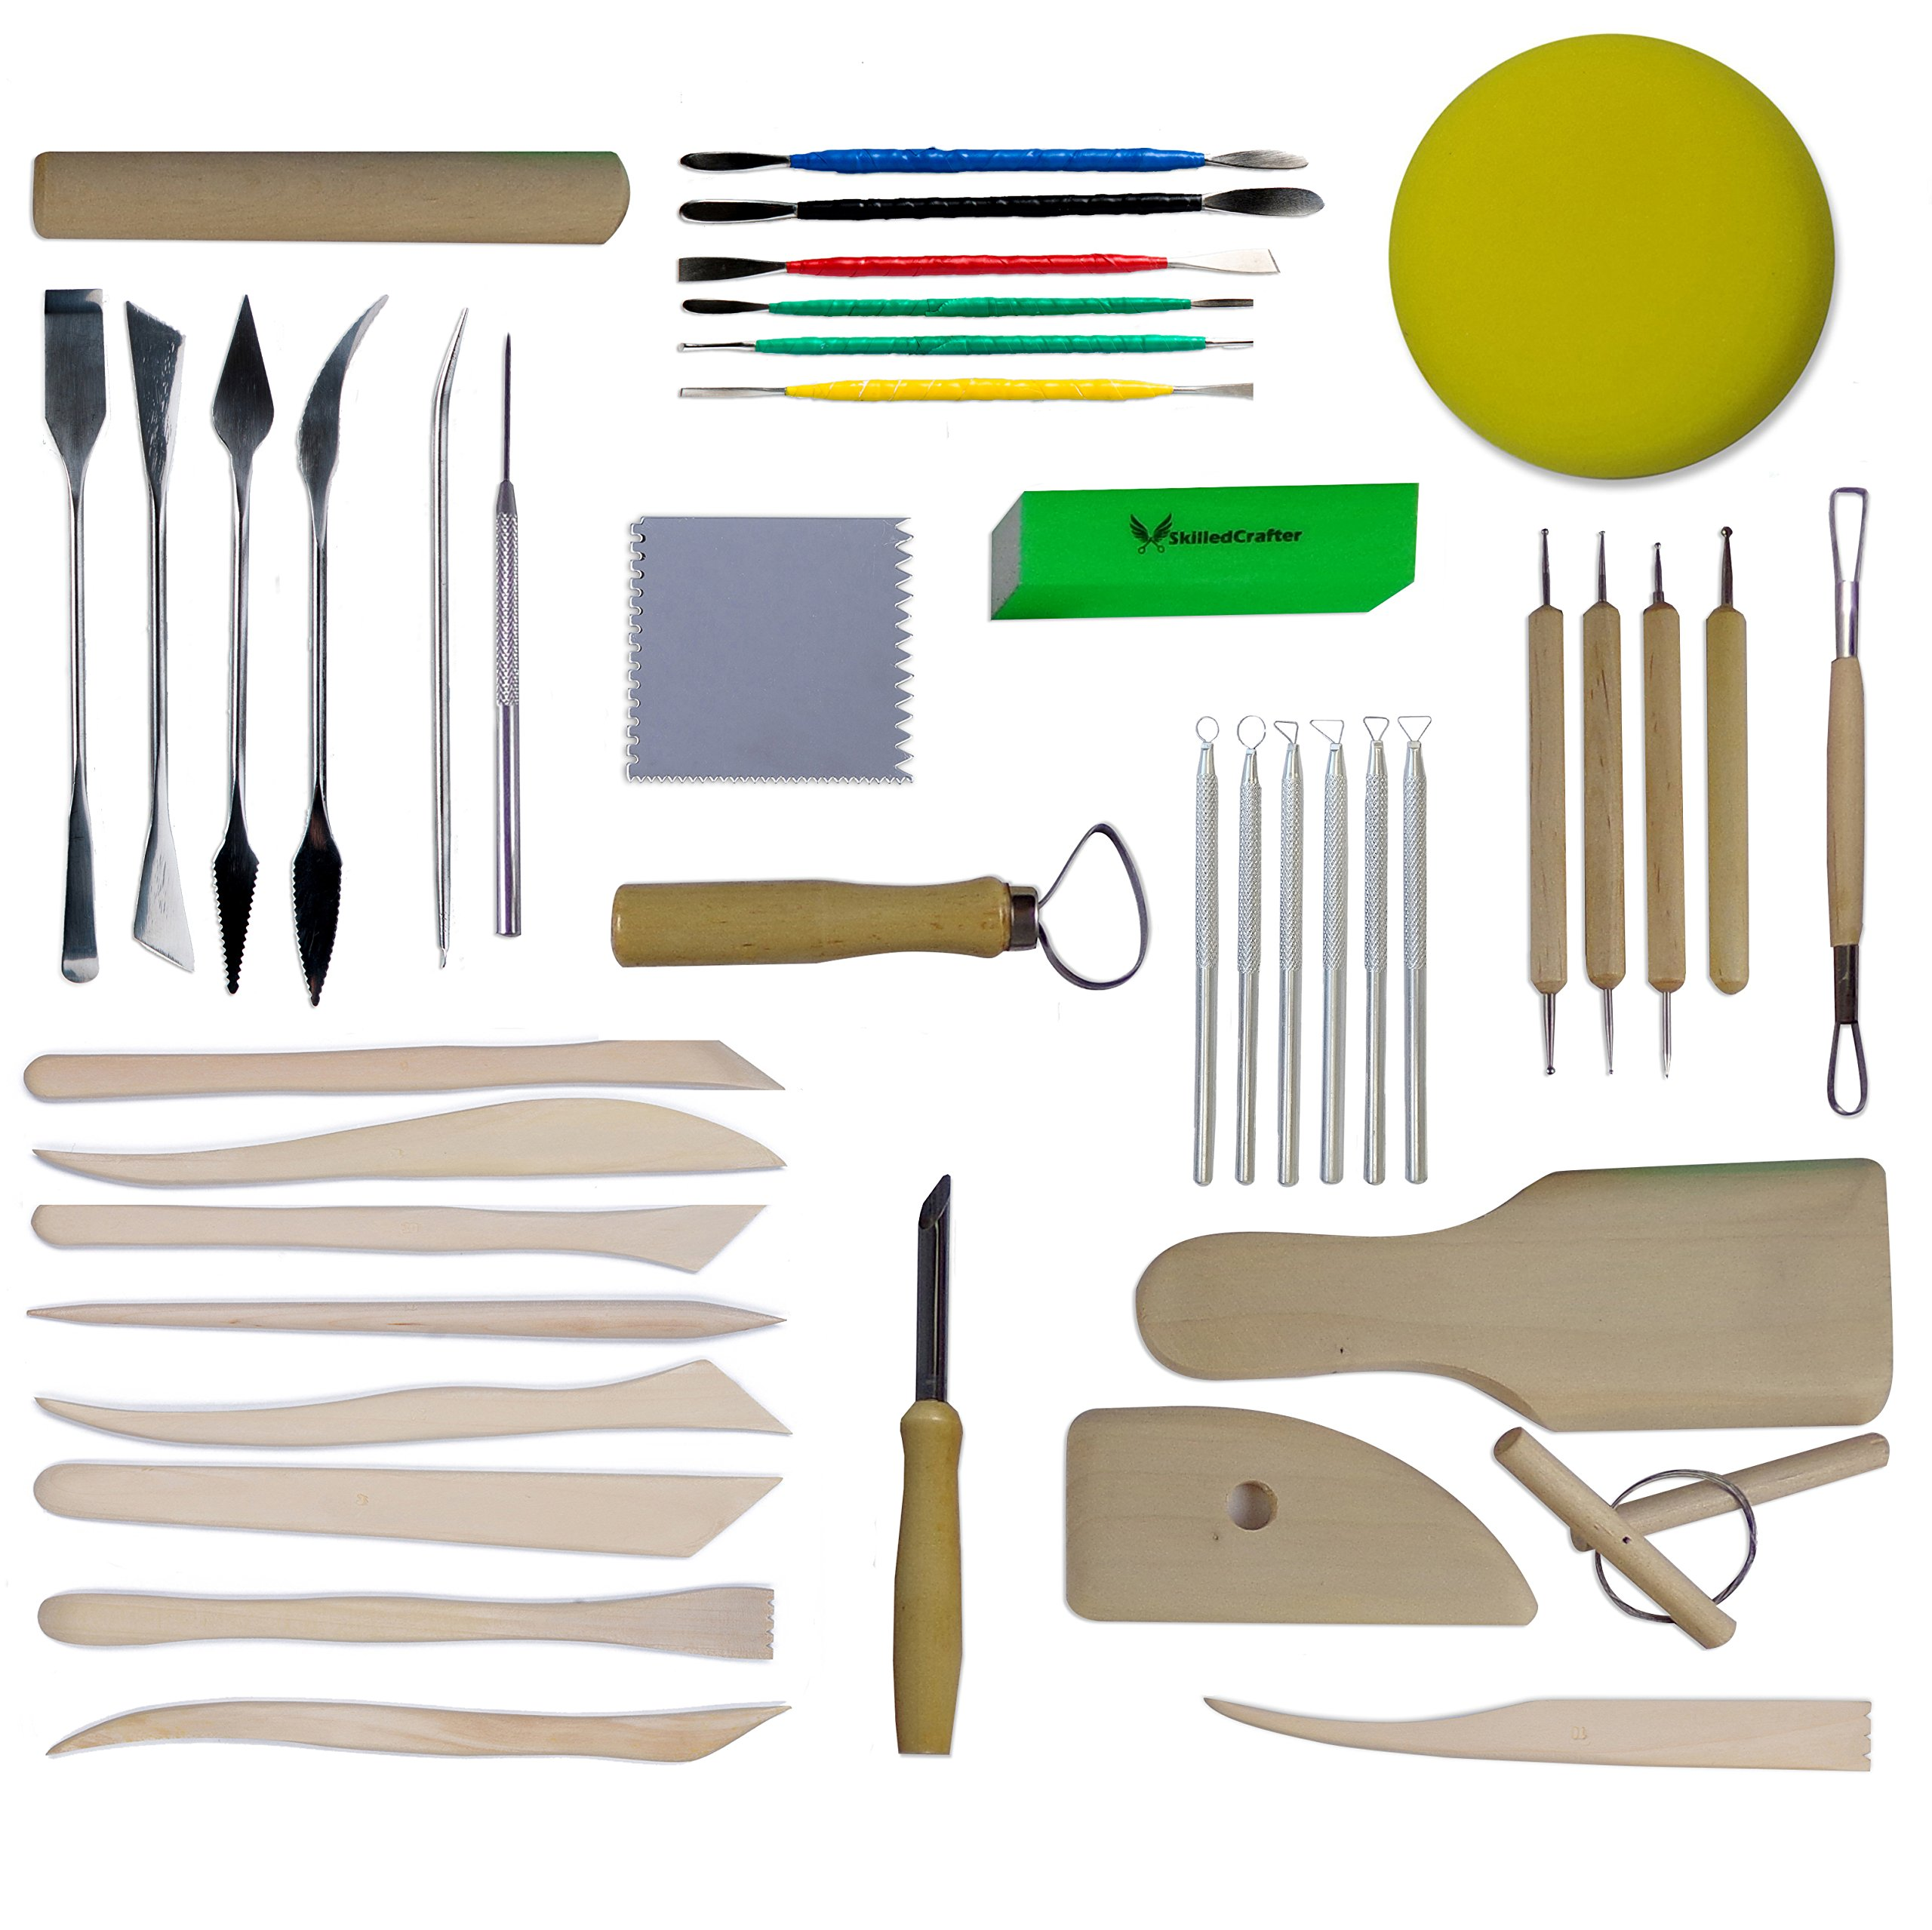 Skilled Crafter Clay Sculpting Tools. 42 Piece Set for Modeling & Detailing, and Ideal for Work on a Potters Wheel. Includes Free Sponge & Needle Tool